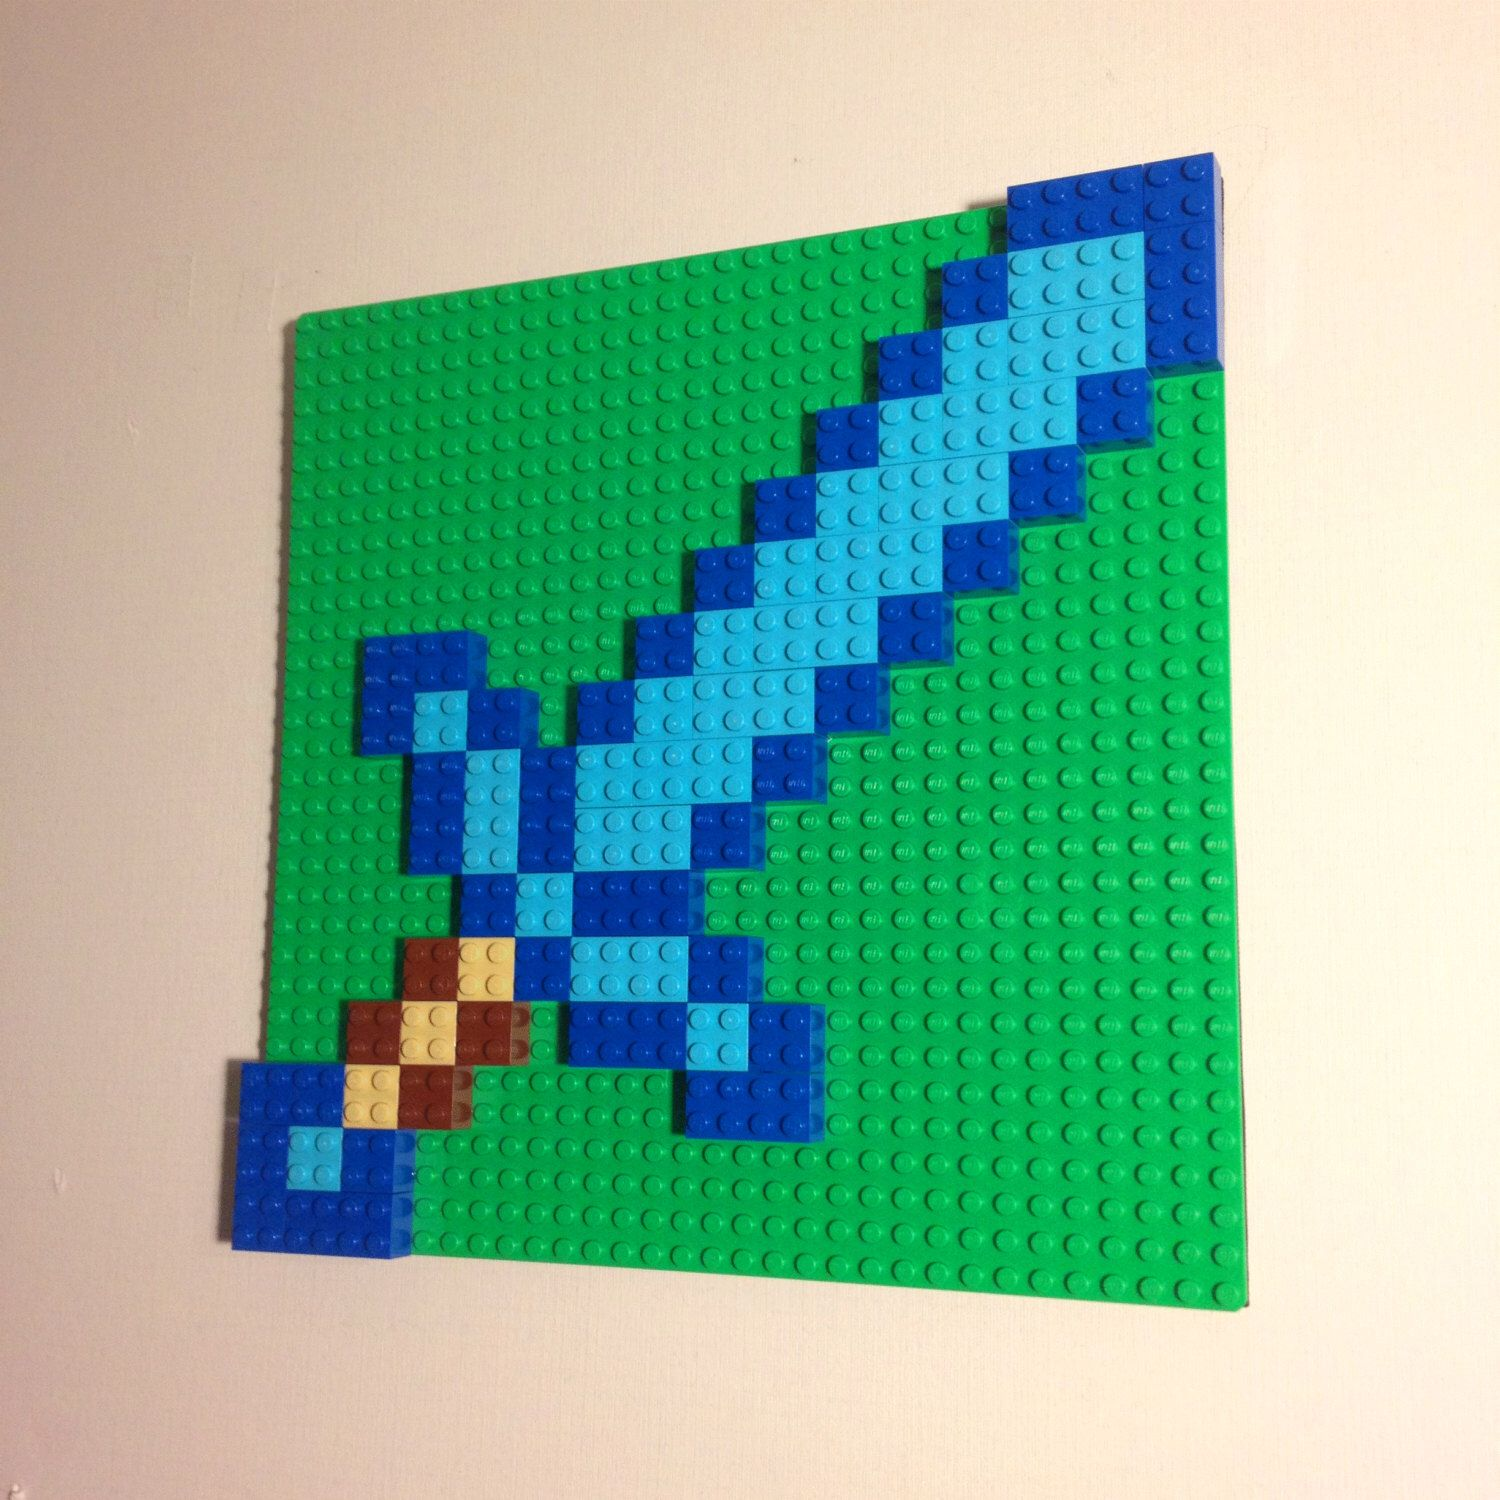 Lego Bedroom Decor Minecraft Inspired Lego Wall Art Diamond Sword Hanging Picture